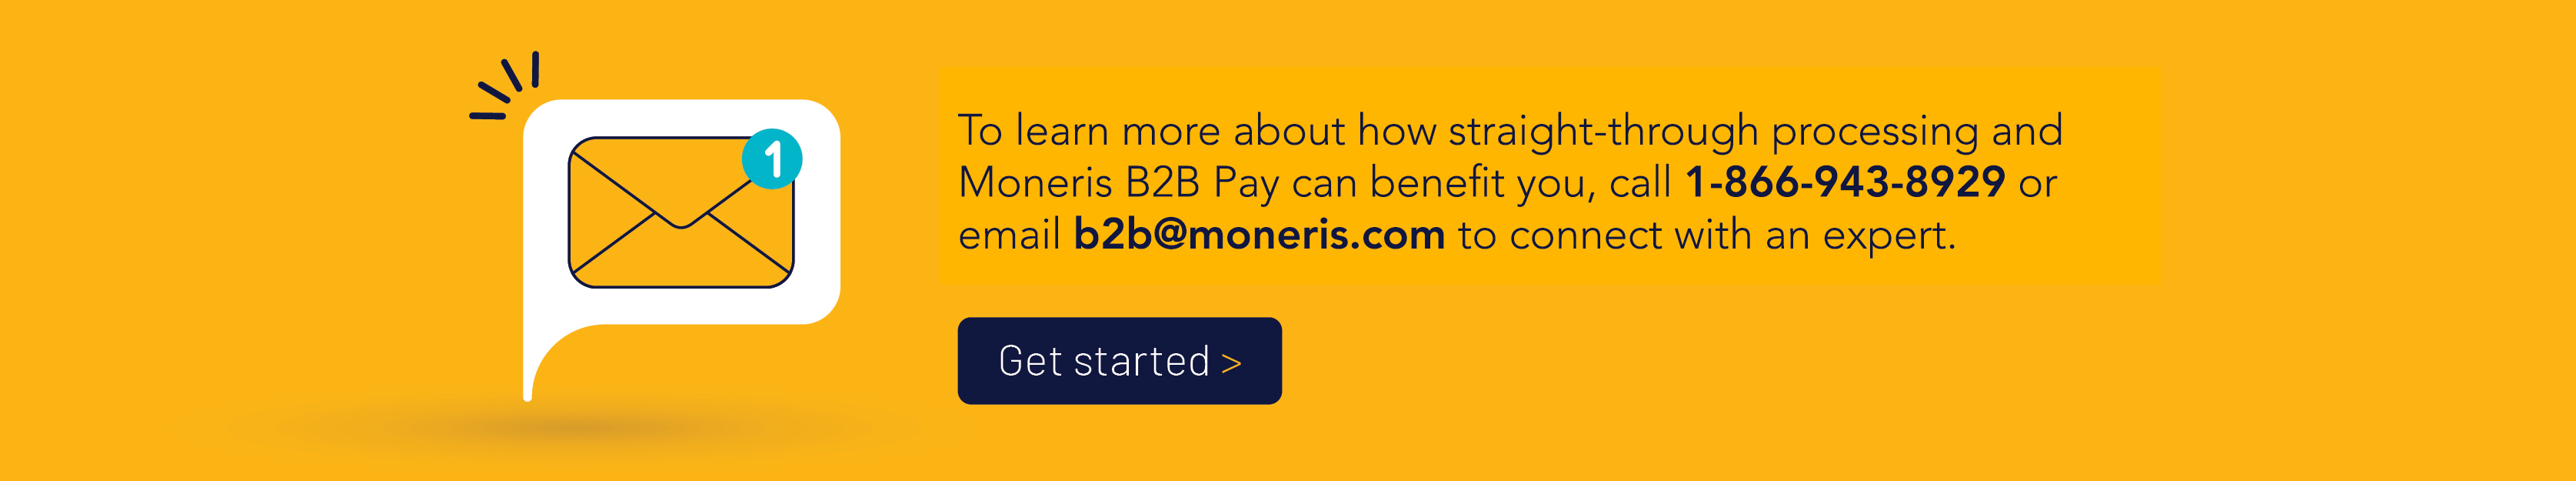 To learn more about how straight-through processing and Moneris B2B Pay can benefit you, call 1-866-943-8929 or email b2b@moneris.com to connect with an expert.